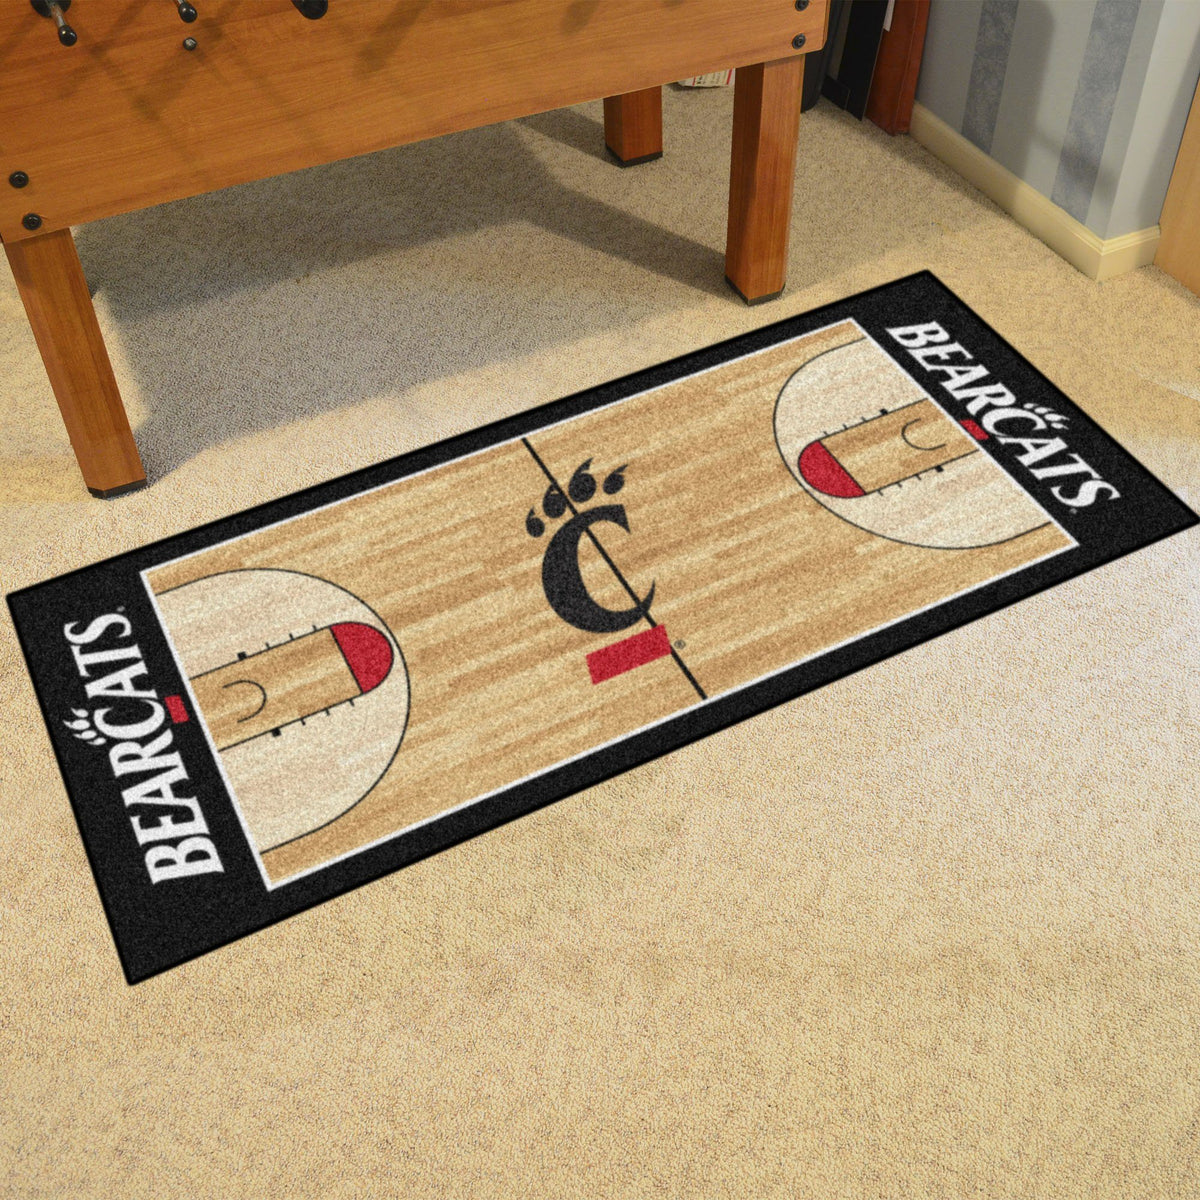 Collegiate - NCAA Basketball Runner Collegiate Mats, Rectangular Mats, NCAA Basketball Runner, Collegiate, Home Fan Mats Cincinnati